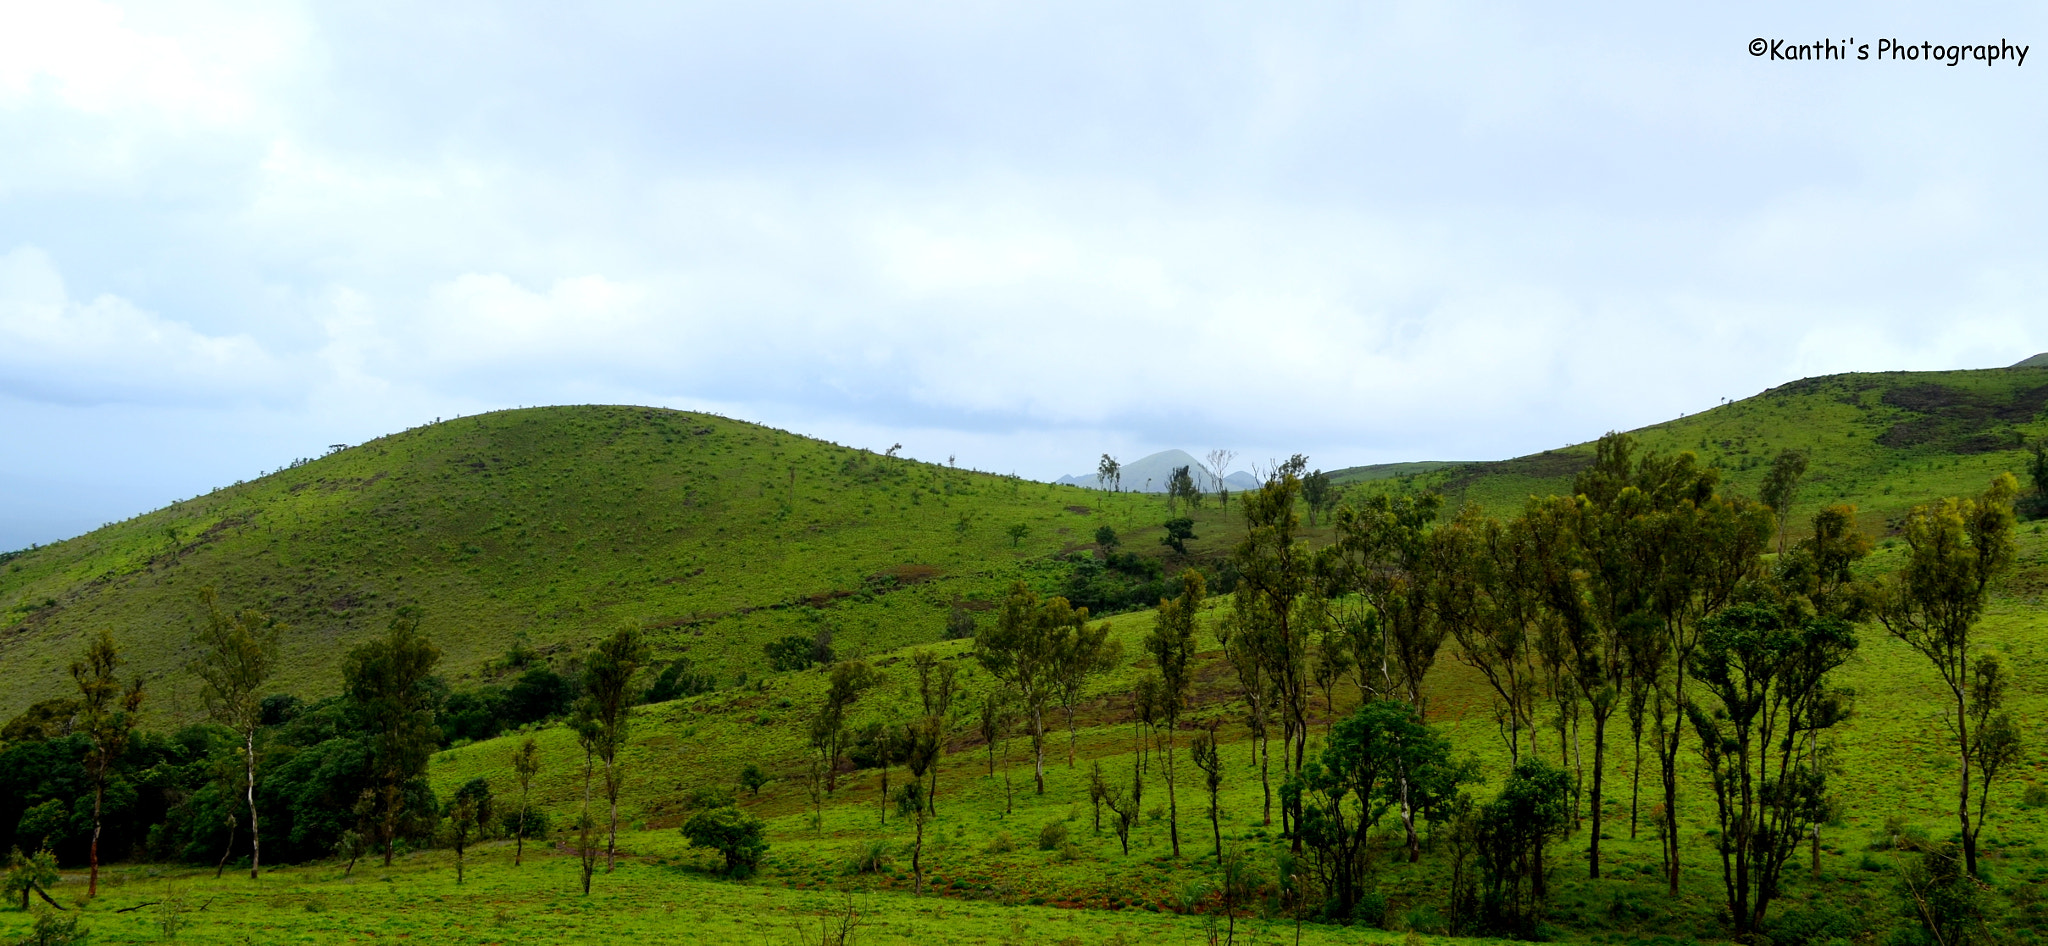 Photograph Green Everywhere by Kanthi Kiran on 500px